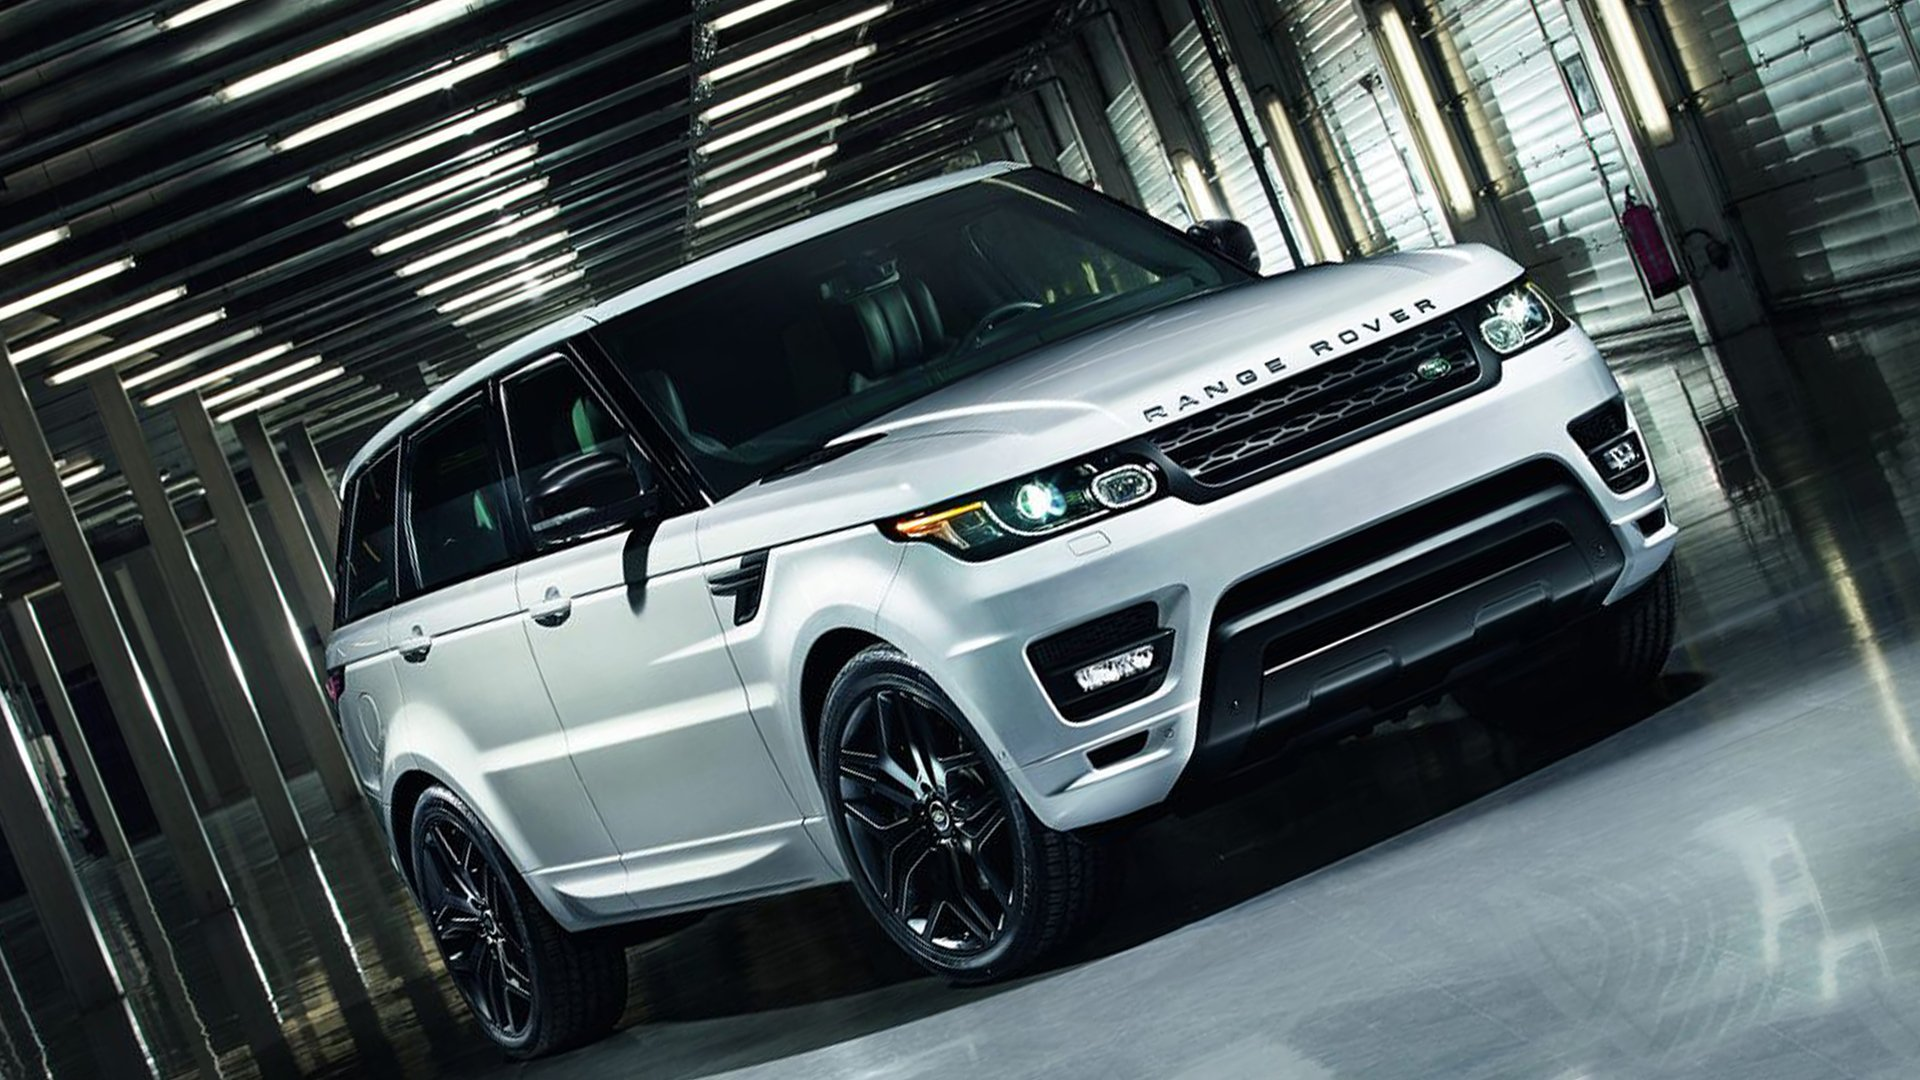 New 2019 Range Rover Sport Release Date